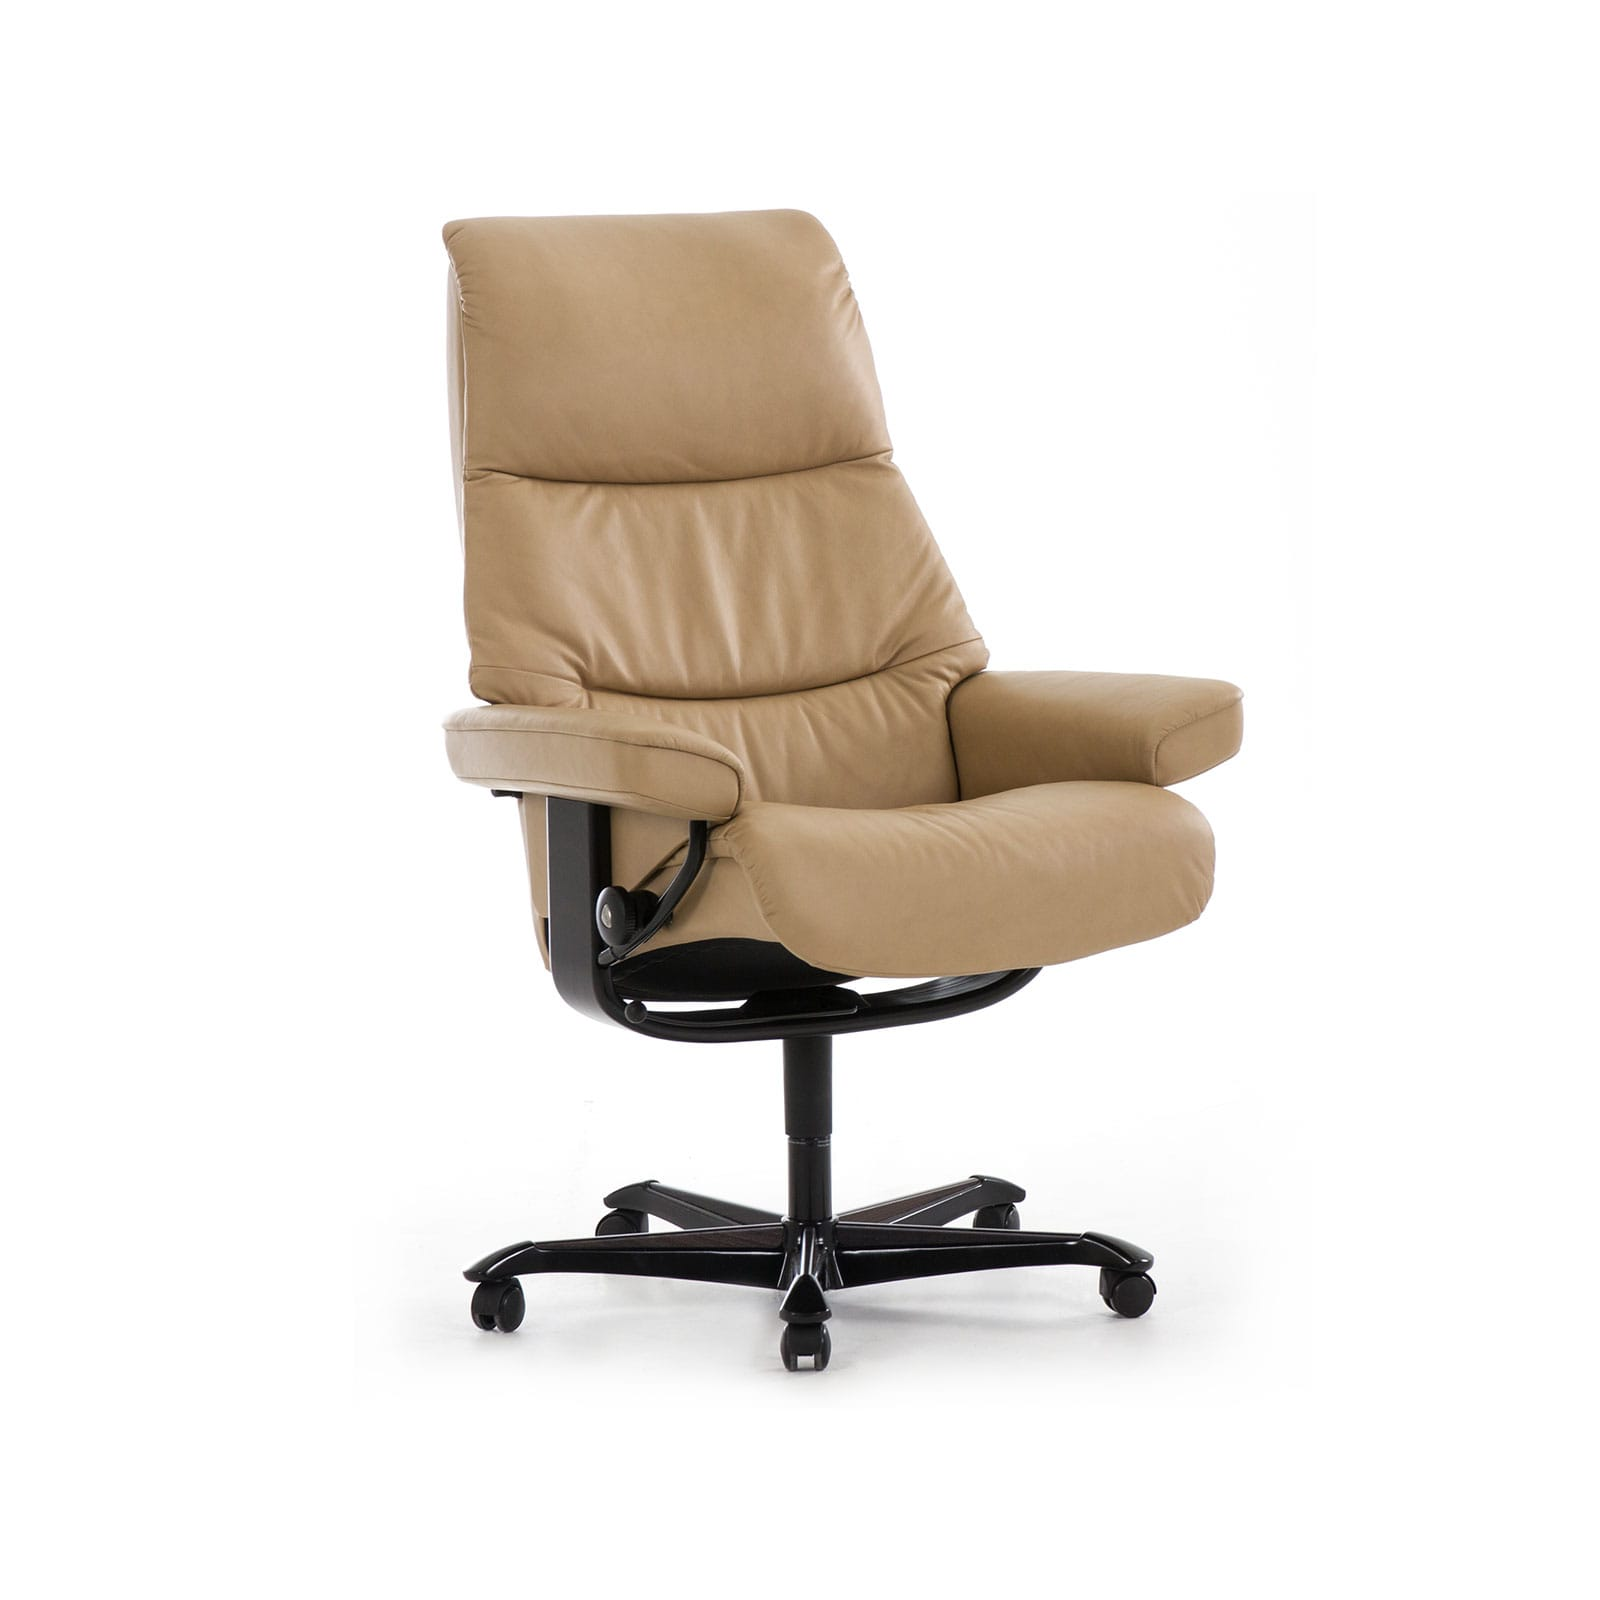 Stressless sessel view home office leder cori beige for Sessel auf rollen leder